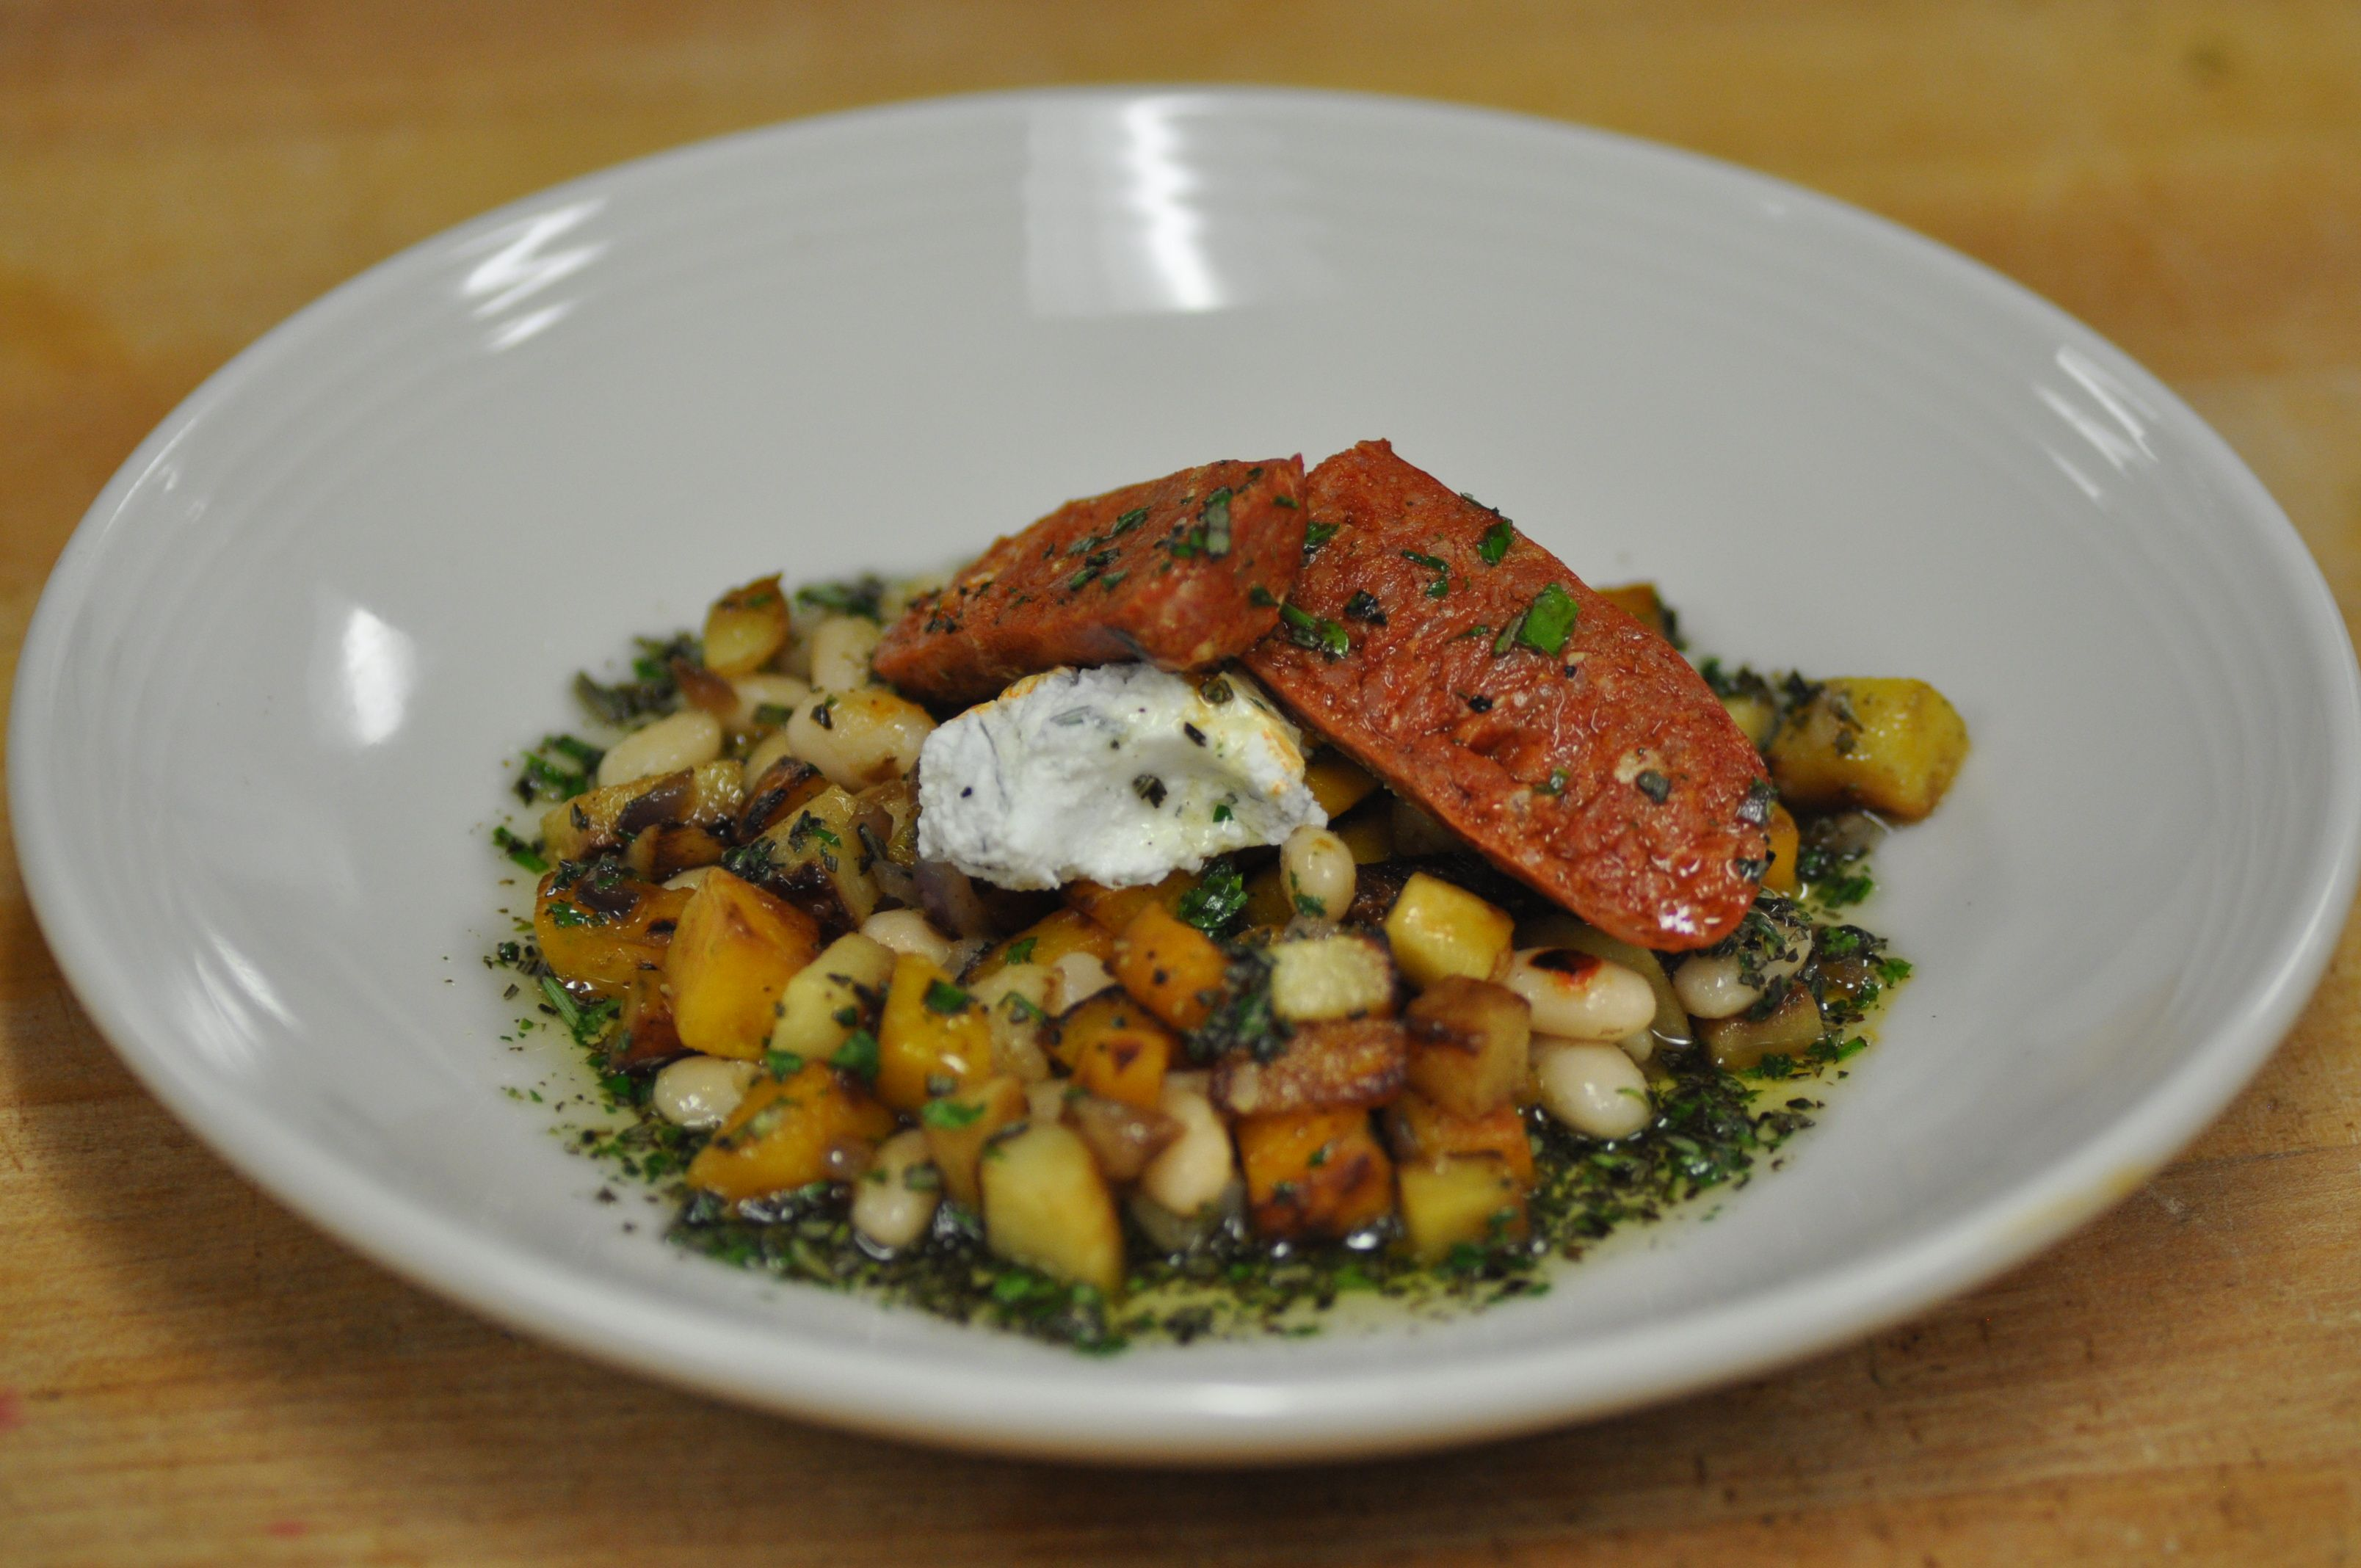 Pin by Restaurant Love on WI - Delicious Dishes from Local WI Restaur ...